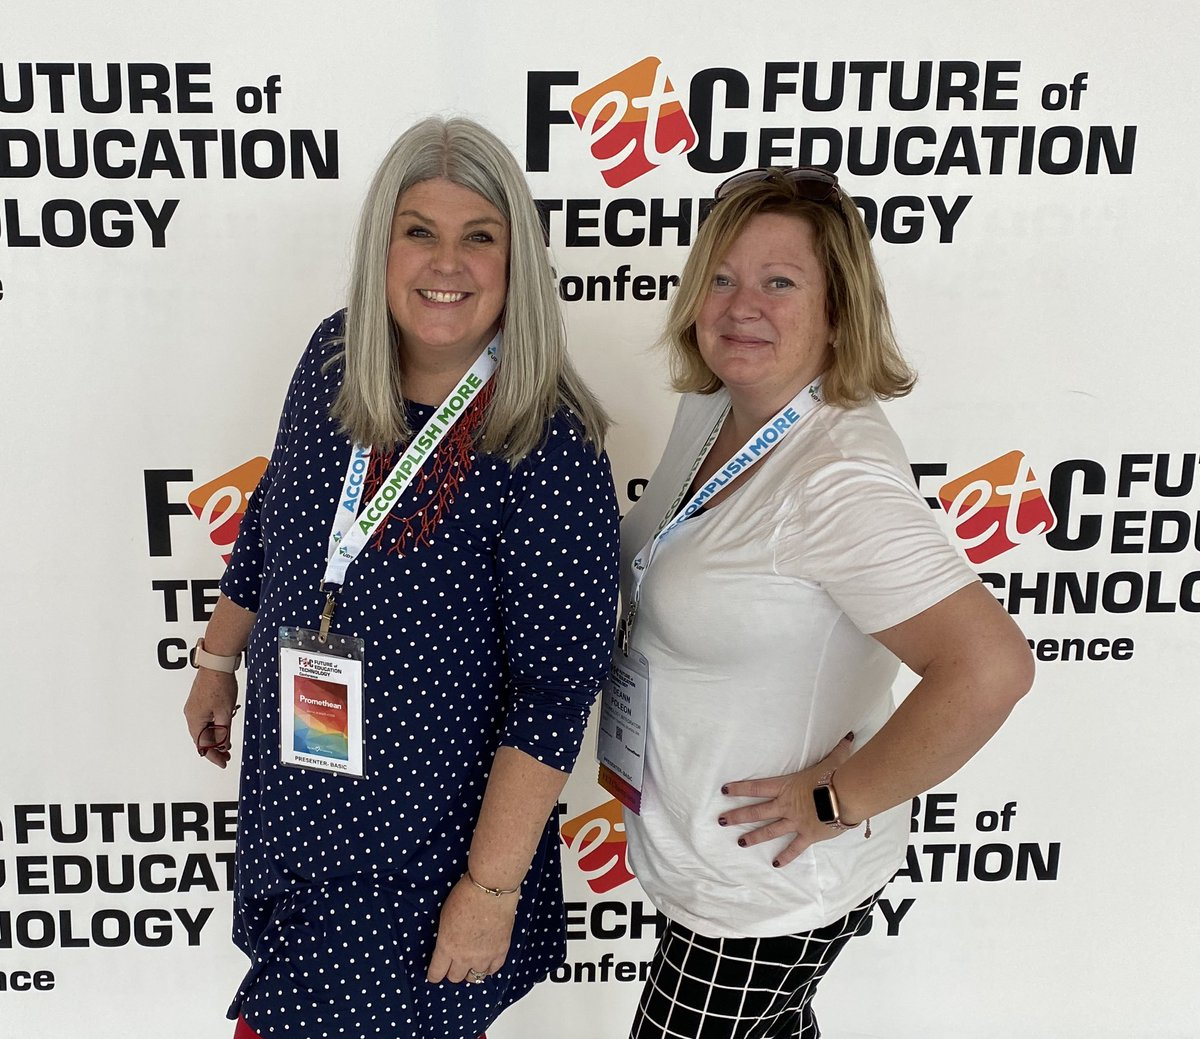 At @fetc this week with @DeannPoleon! #FETC